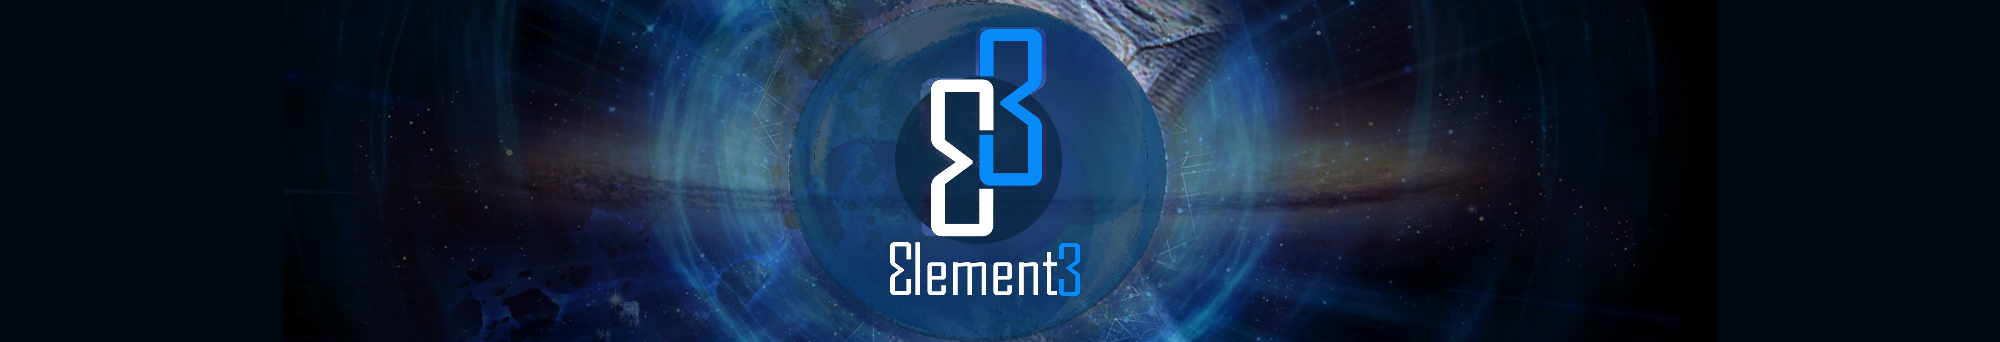 Element3 - FREE for limited time only